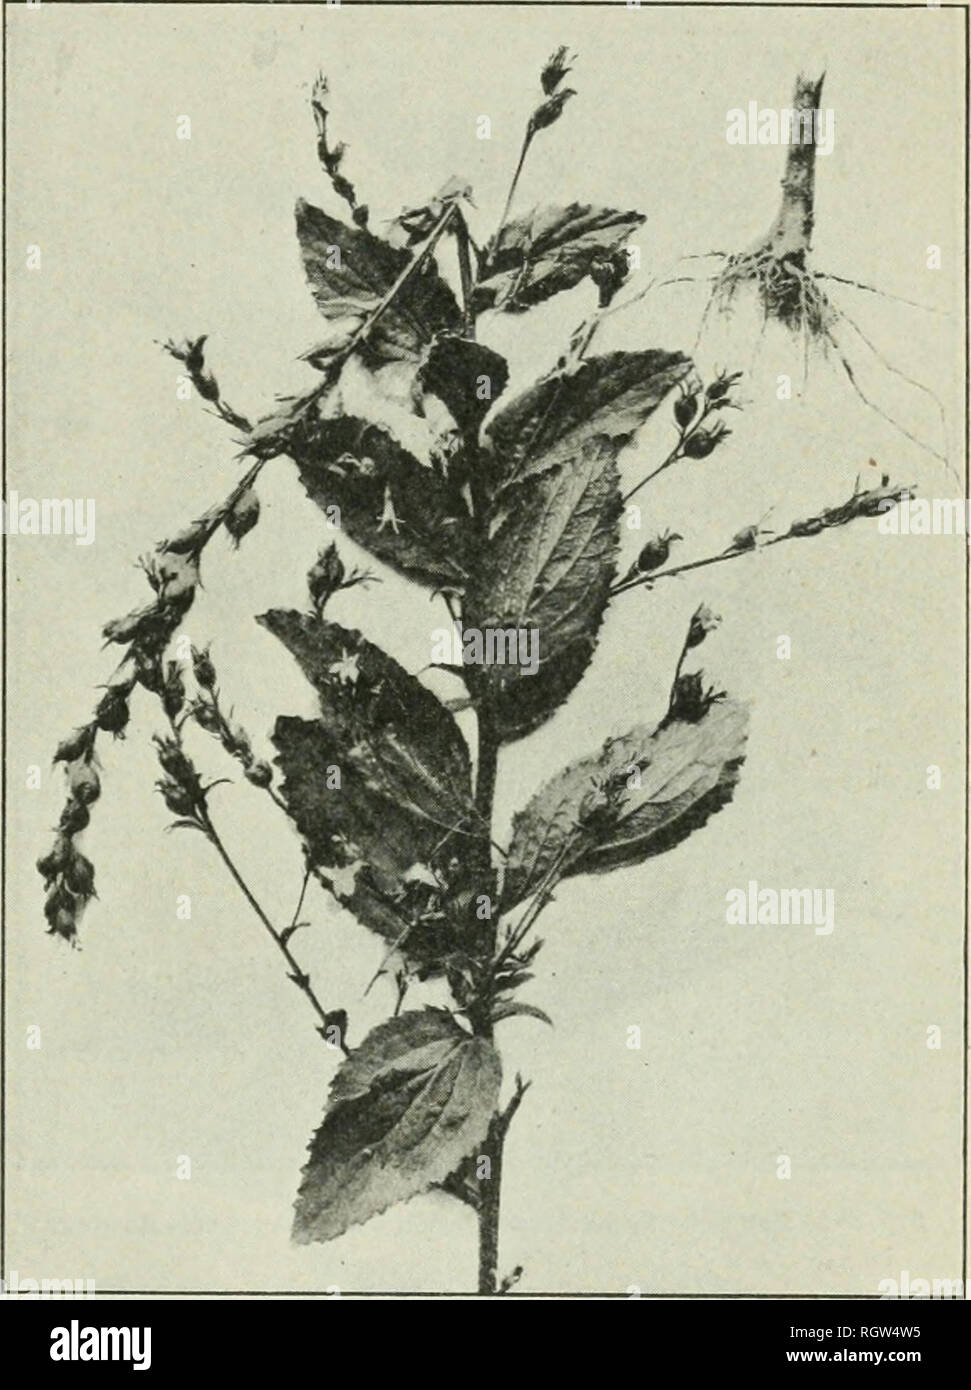 Bulletin 1901 13 Agriculture Agriculture Plants Furnishing